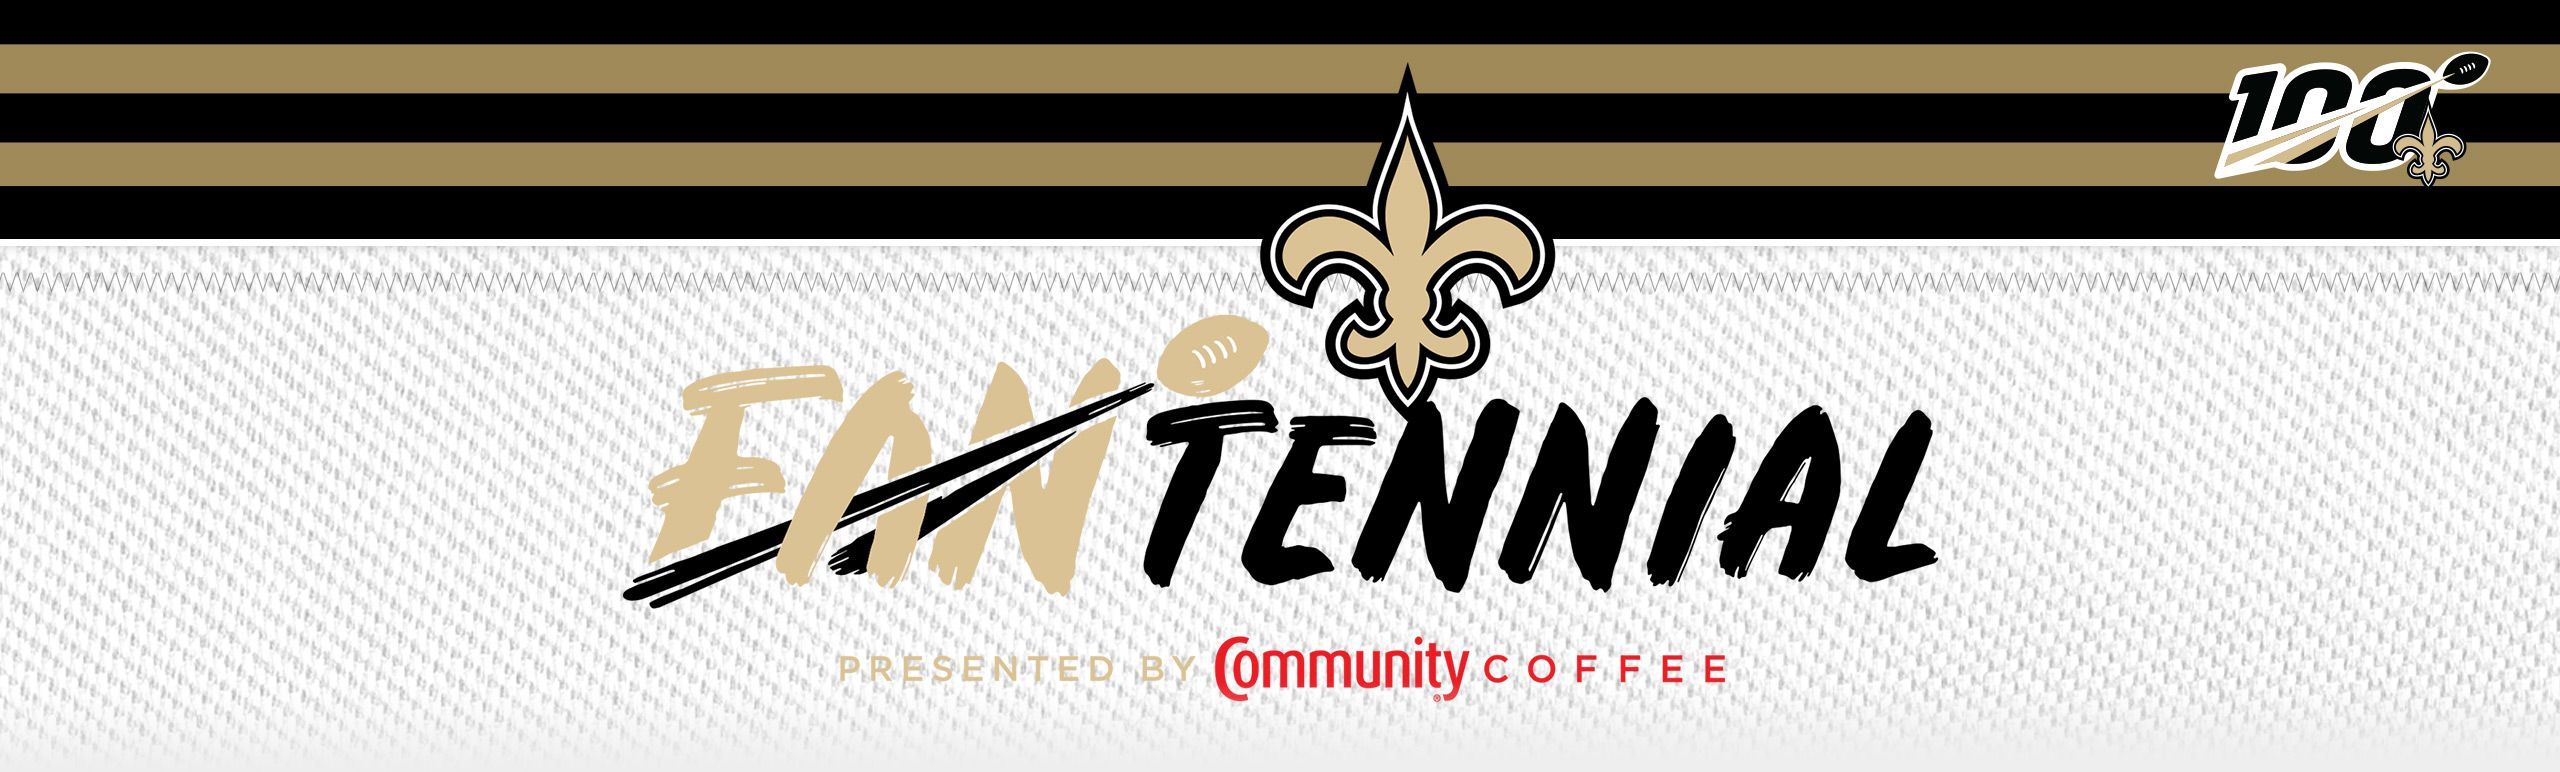 Saints_2019_Fantennial_Top_Page_Header-v2